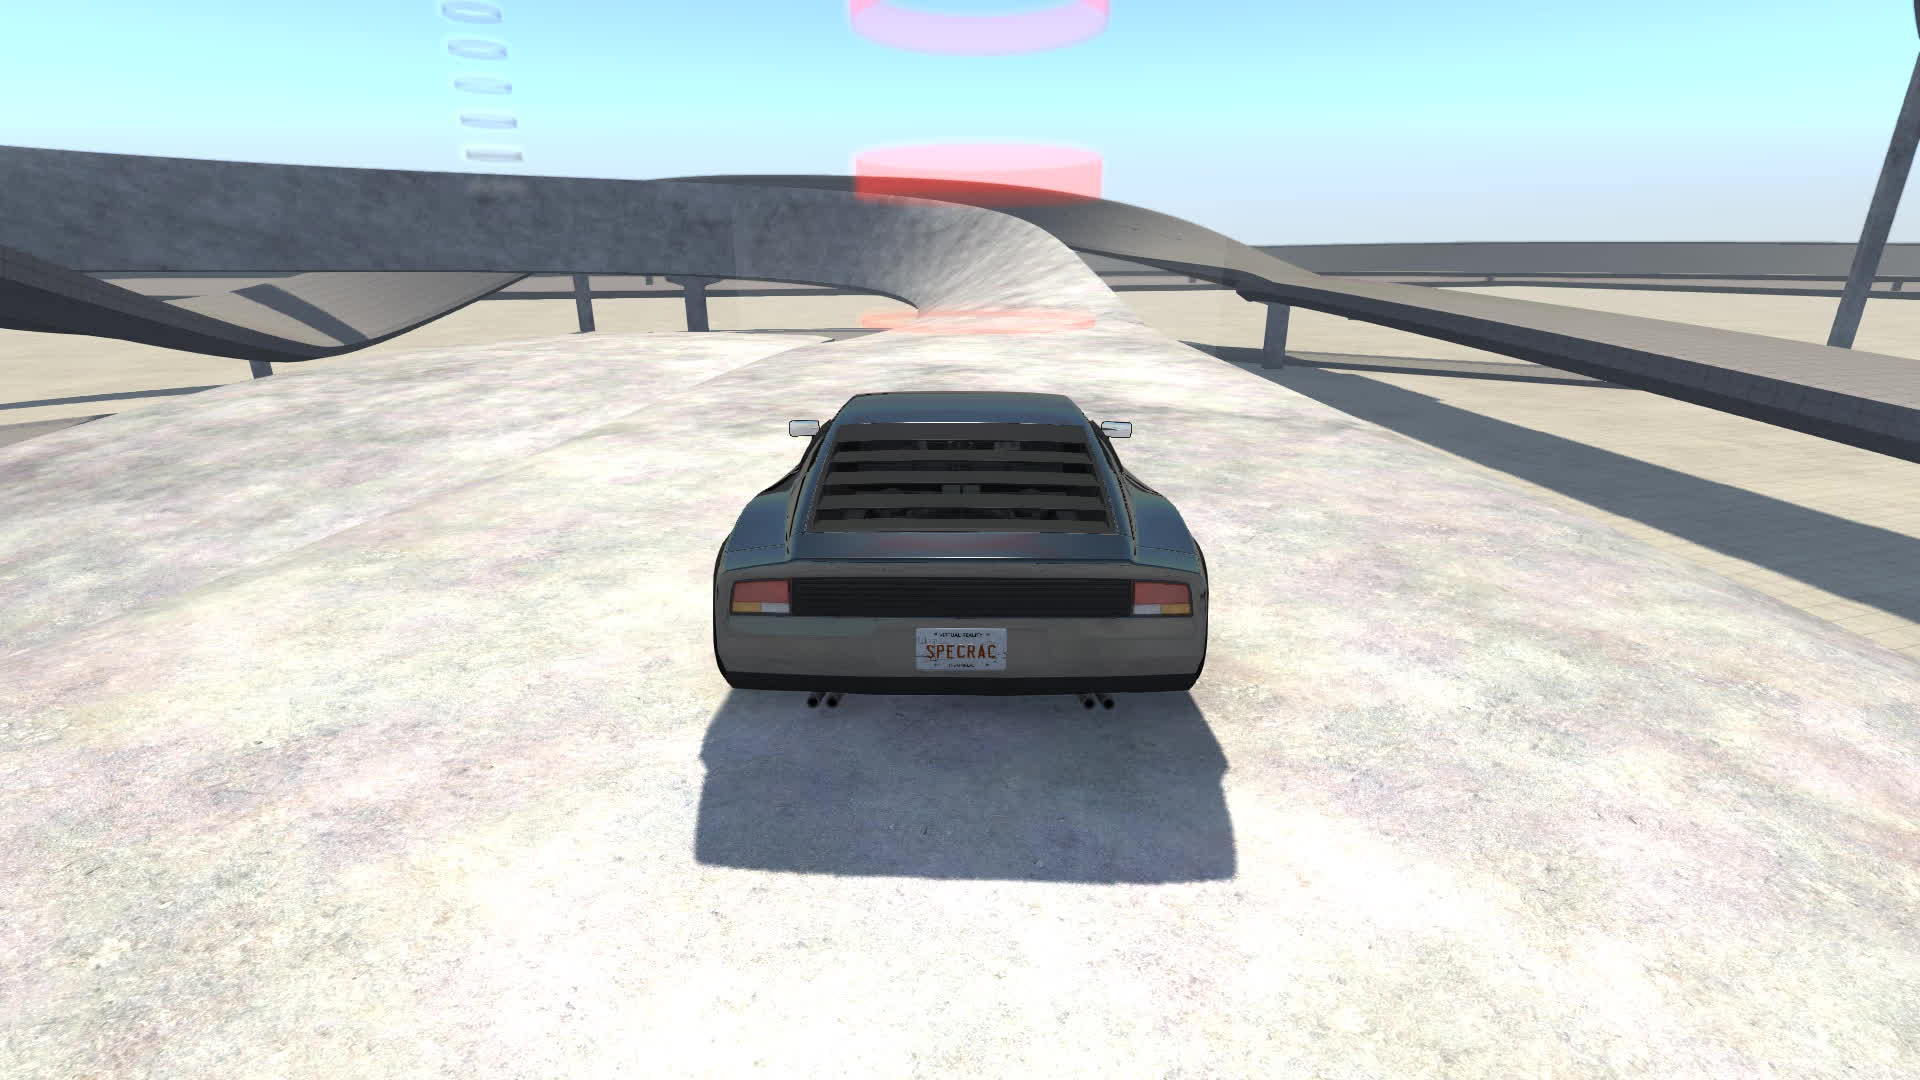 beamng, Flight of the Bolidebee Long GIFs